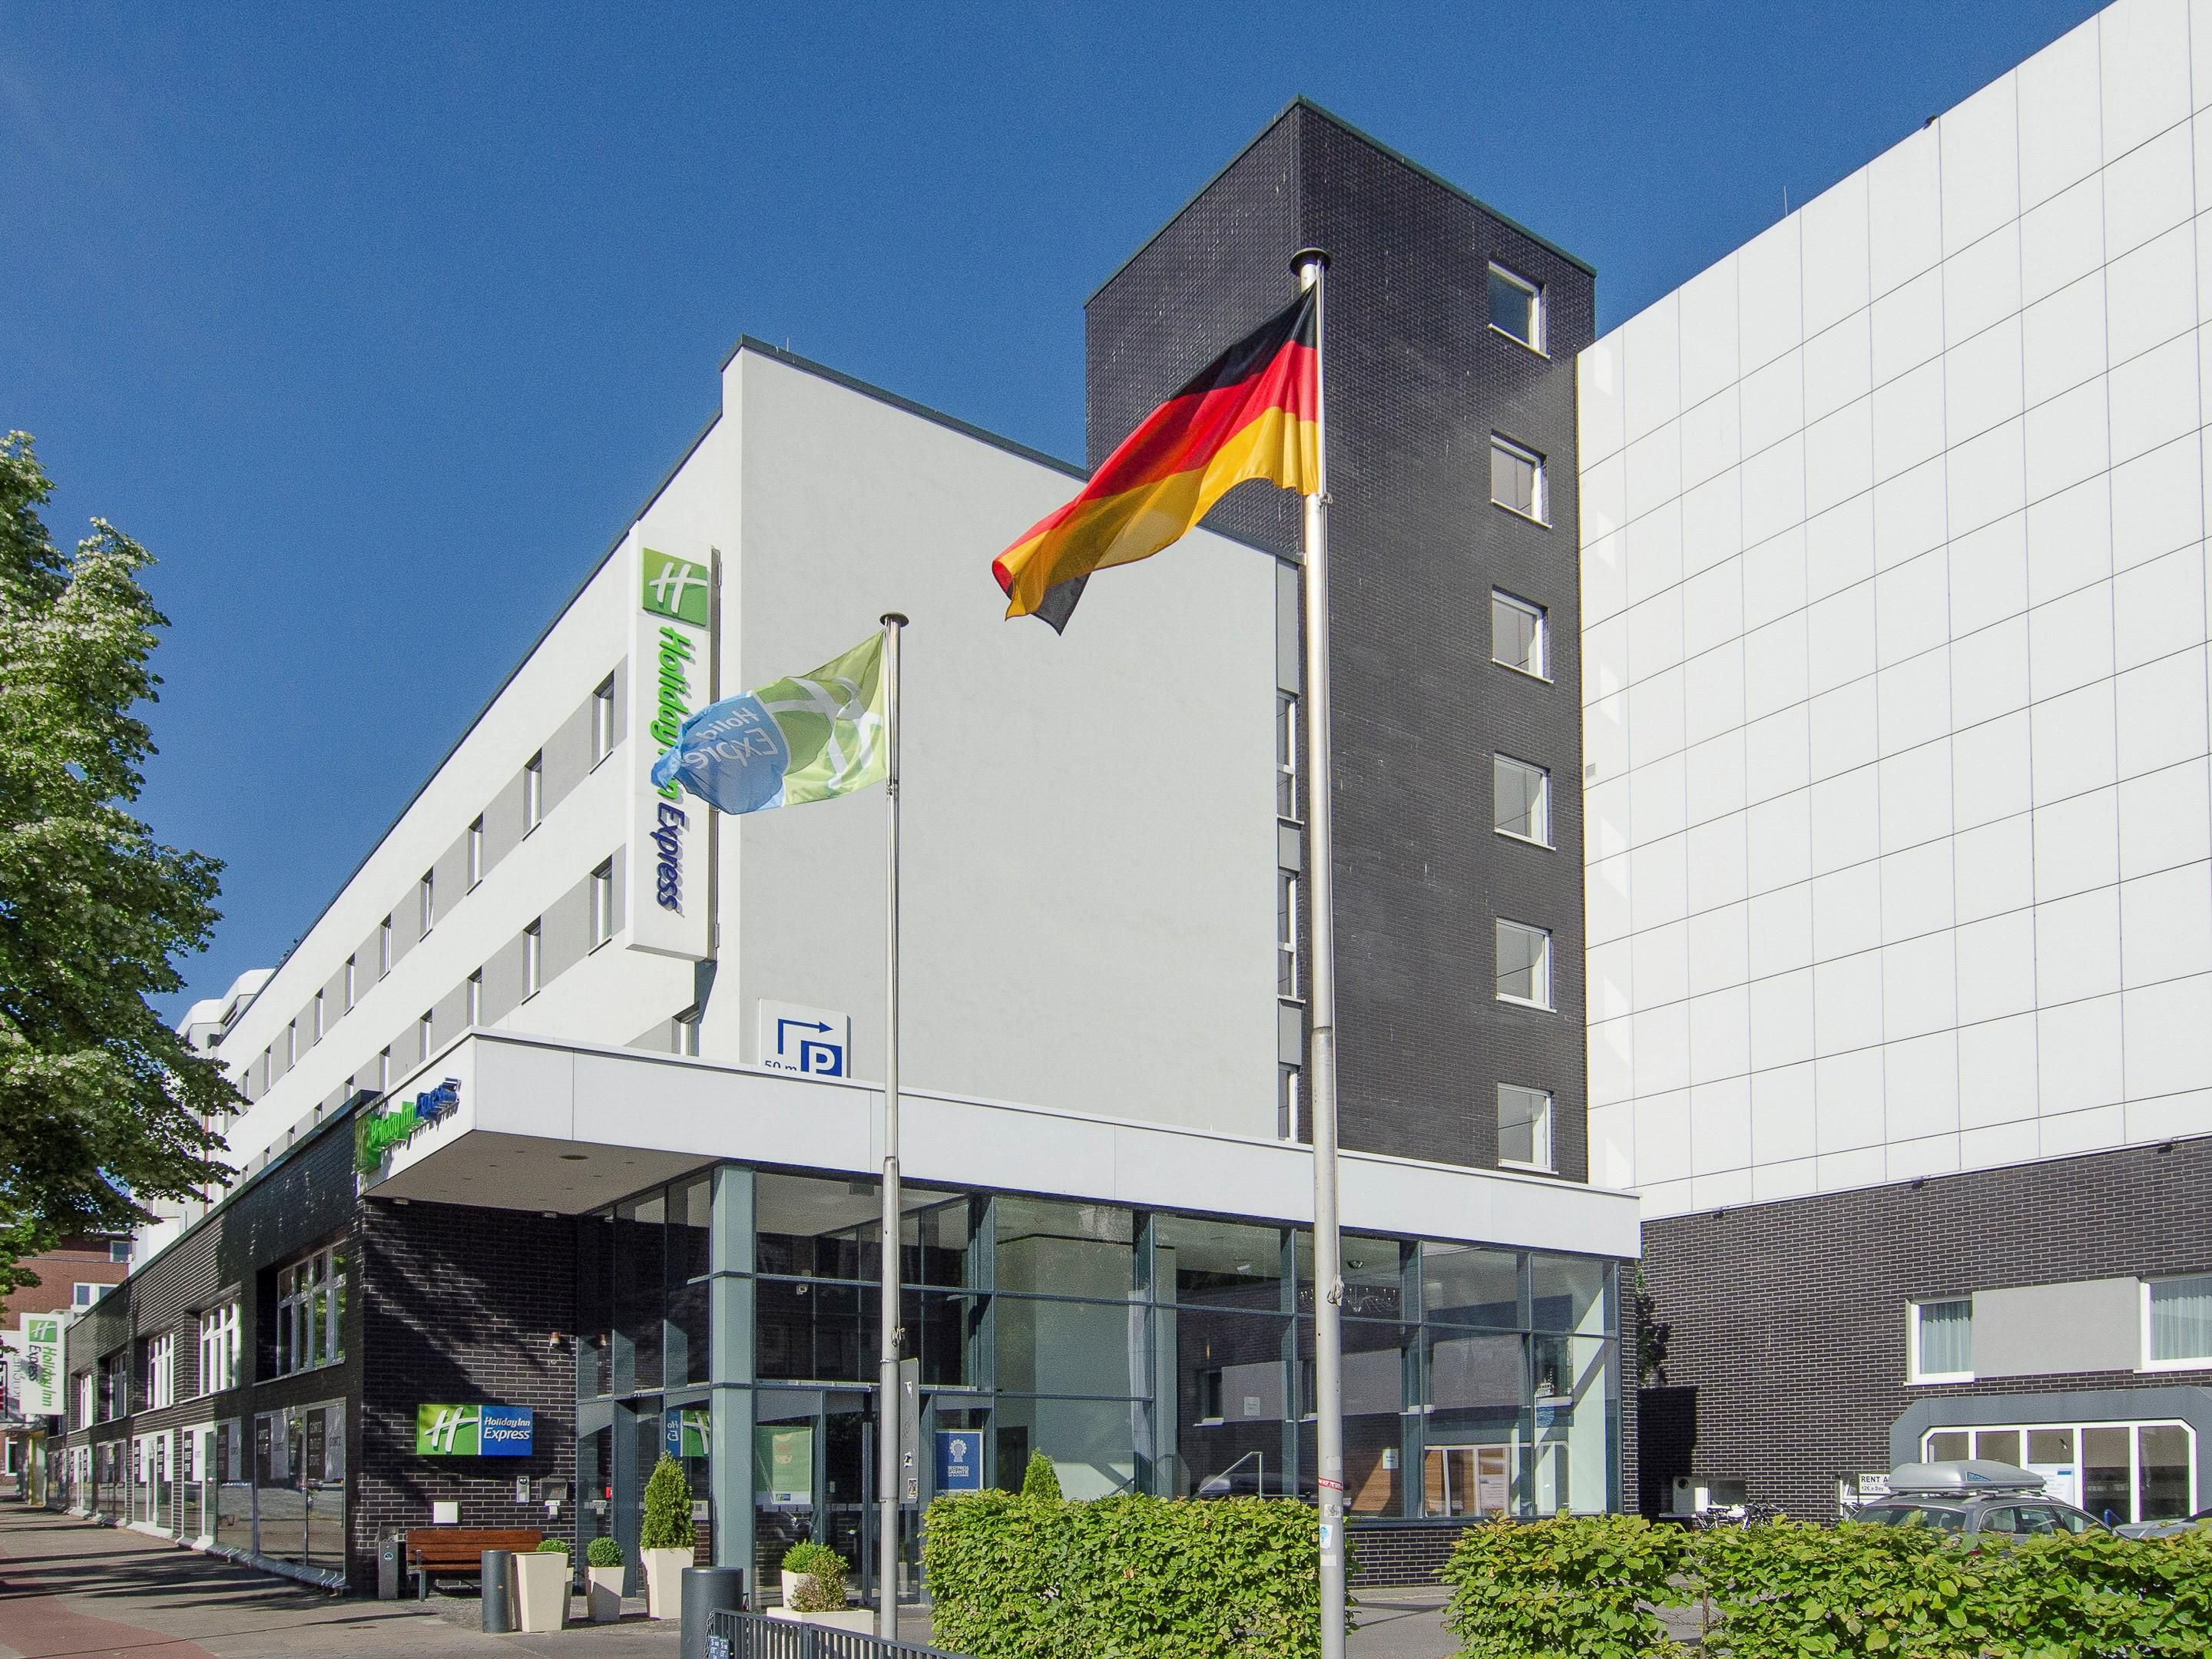 Holiday Inn Express Hamburg City Centre Hotel by IHG